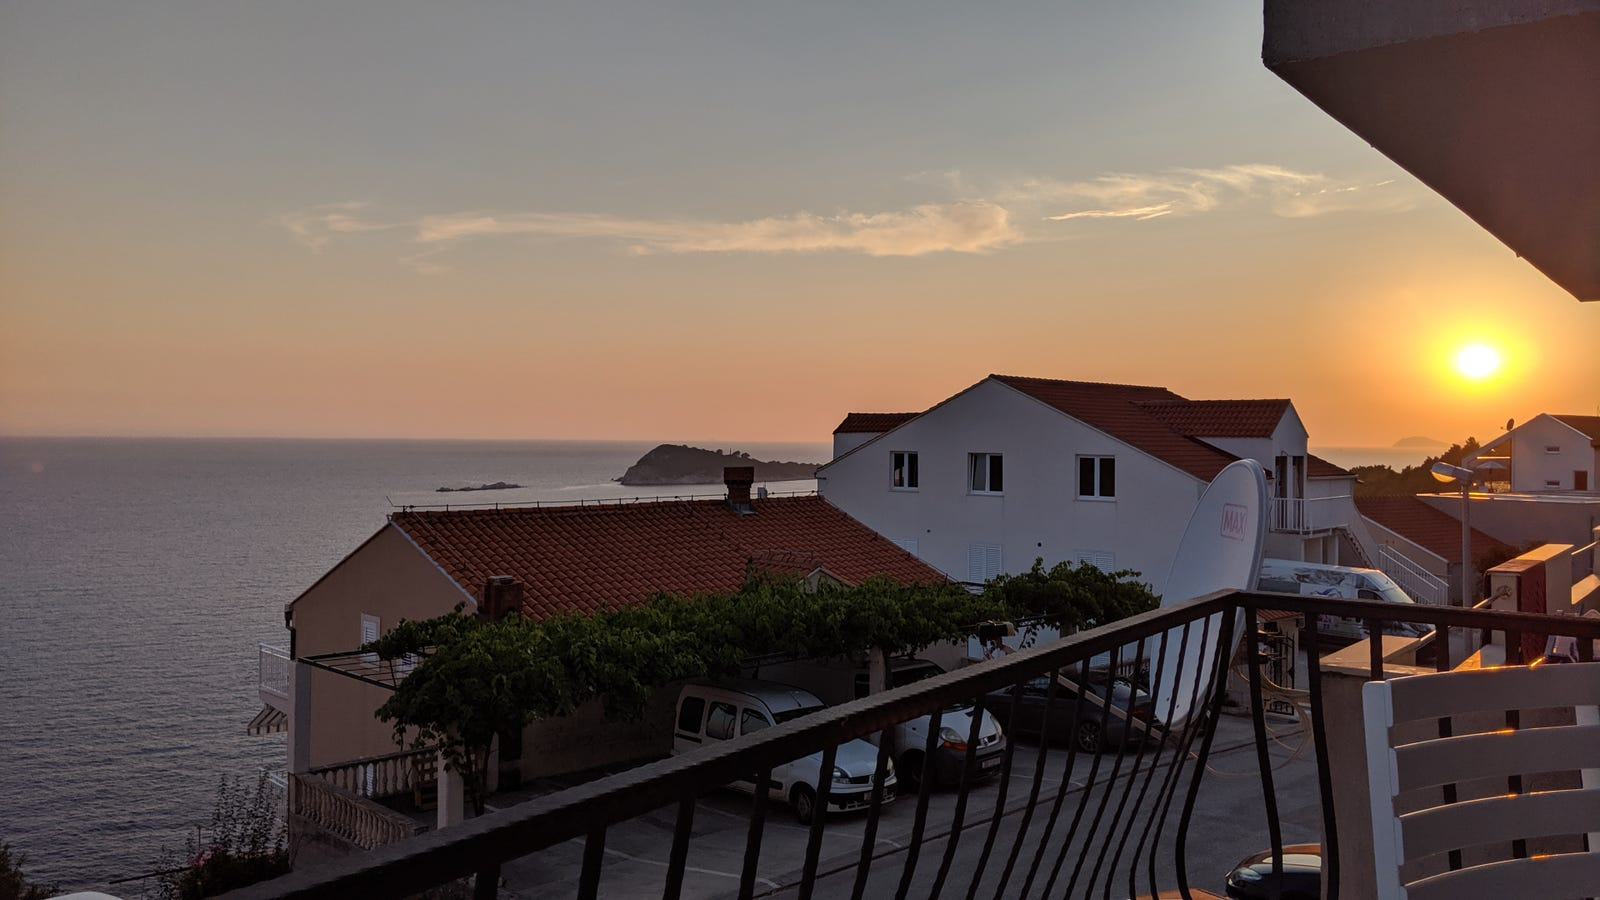 This is the sunset view from our apartment in Croatia. We could barely enjoy how gorgeous it was because the flight in was also pretty rough! We were supposed to meet GC's sister and father for dinner, but she just needed to sleep hard for 12 hours.